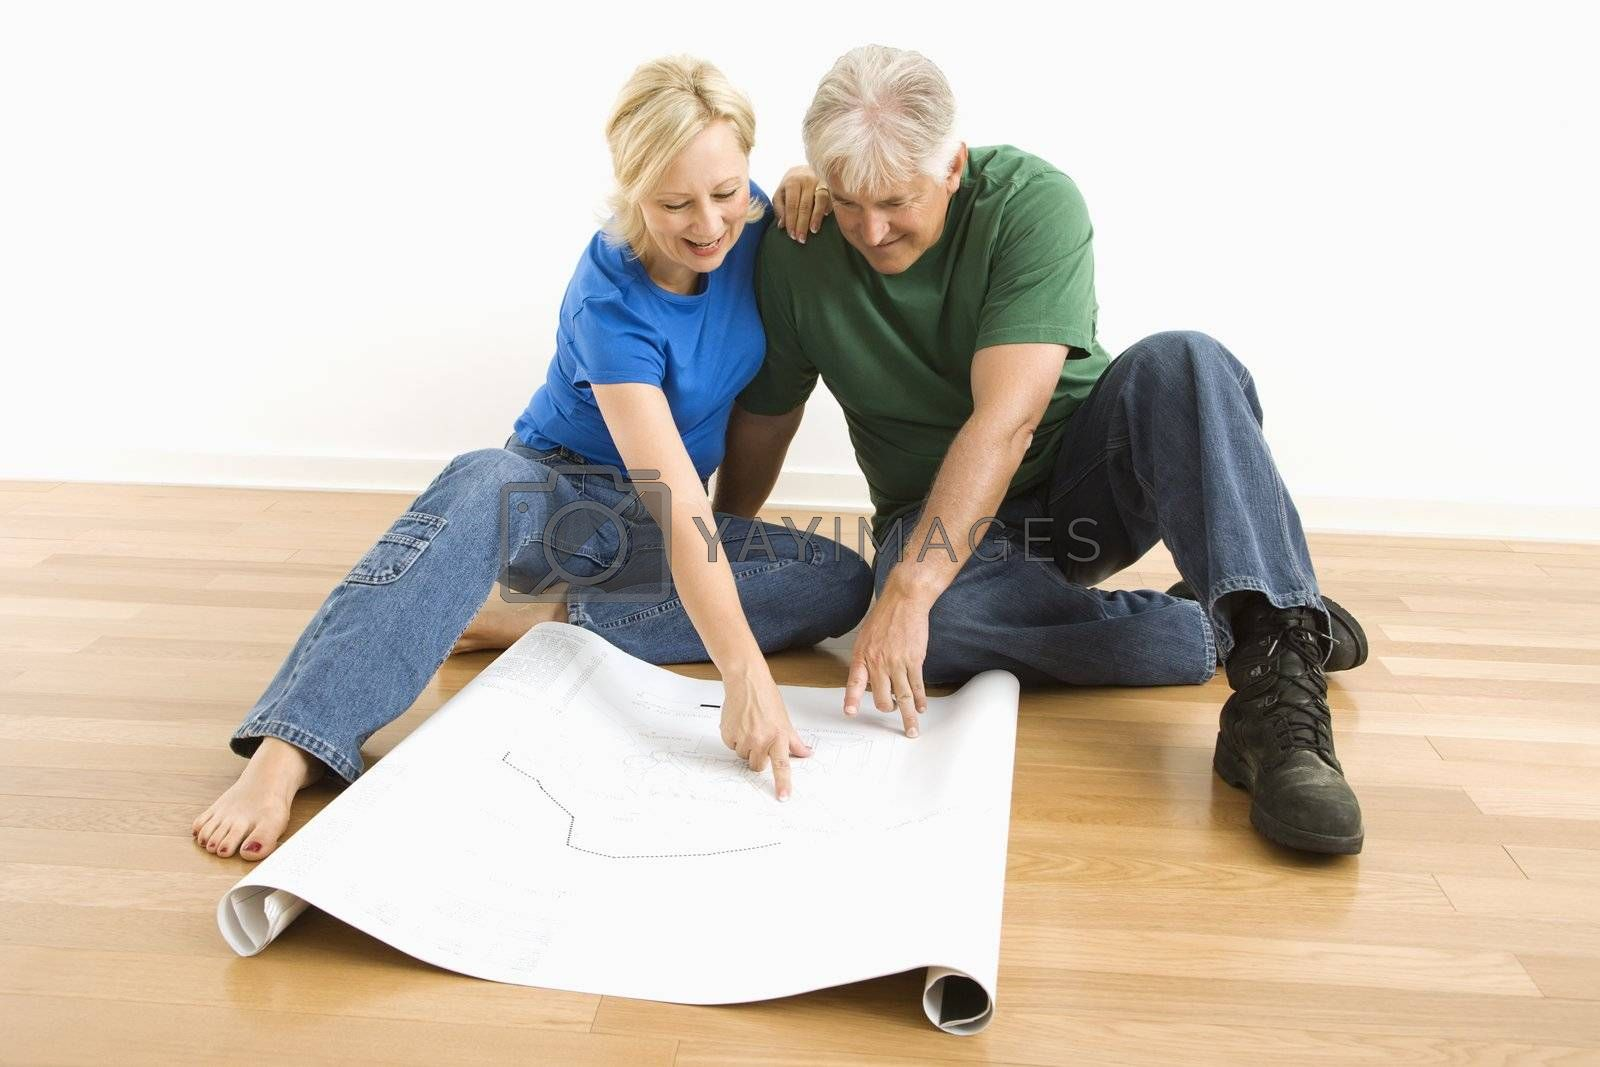 Middle-aged couple sitting on floor looking at and discussing architectural blueprints together.